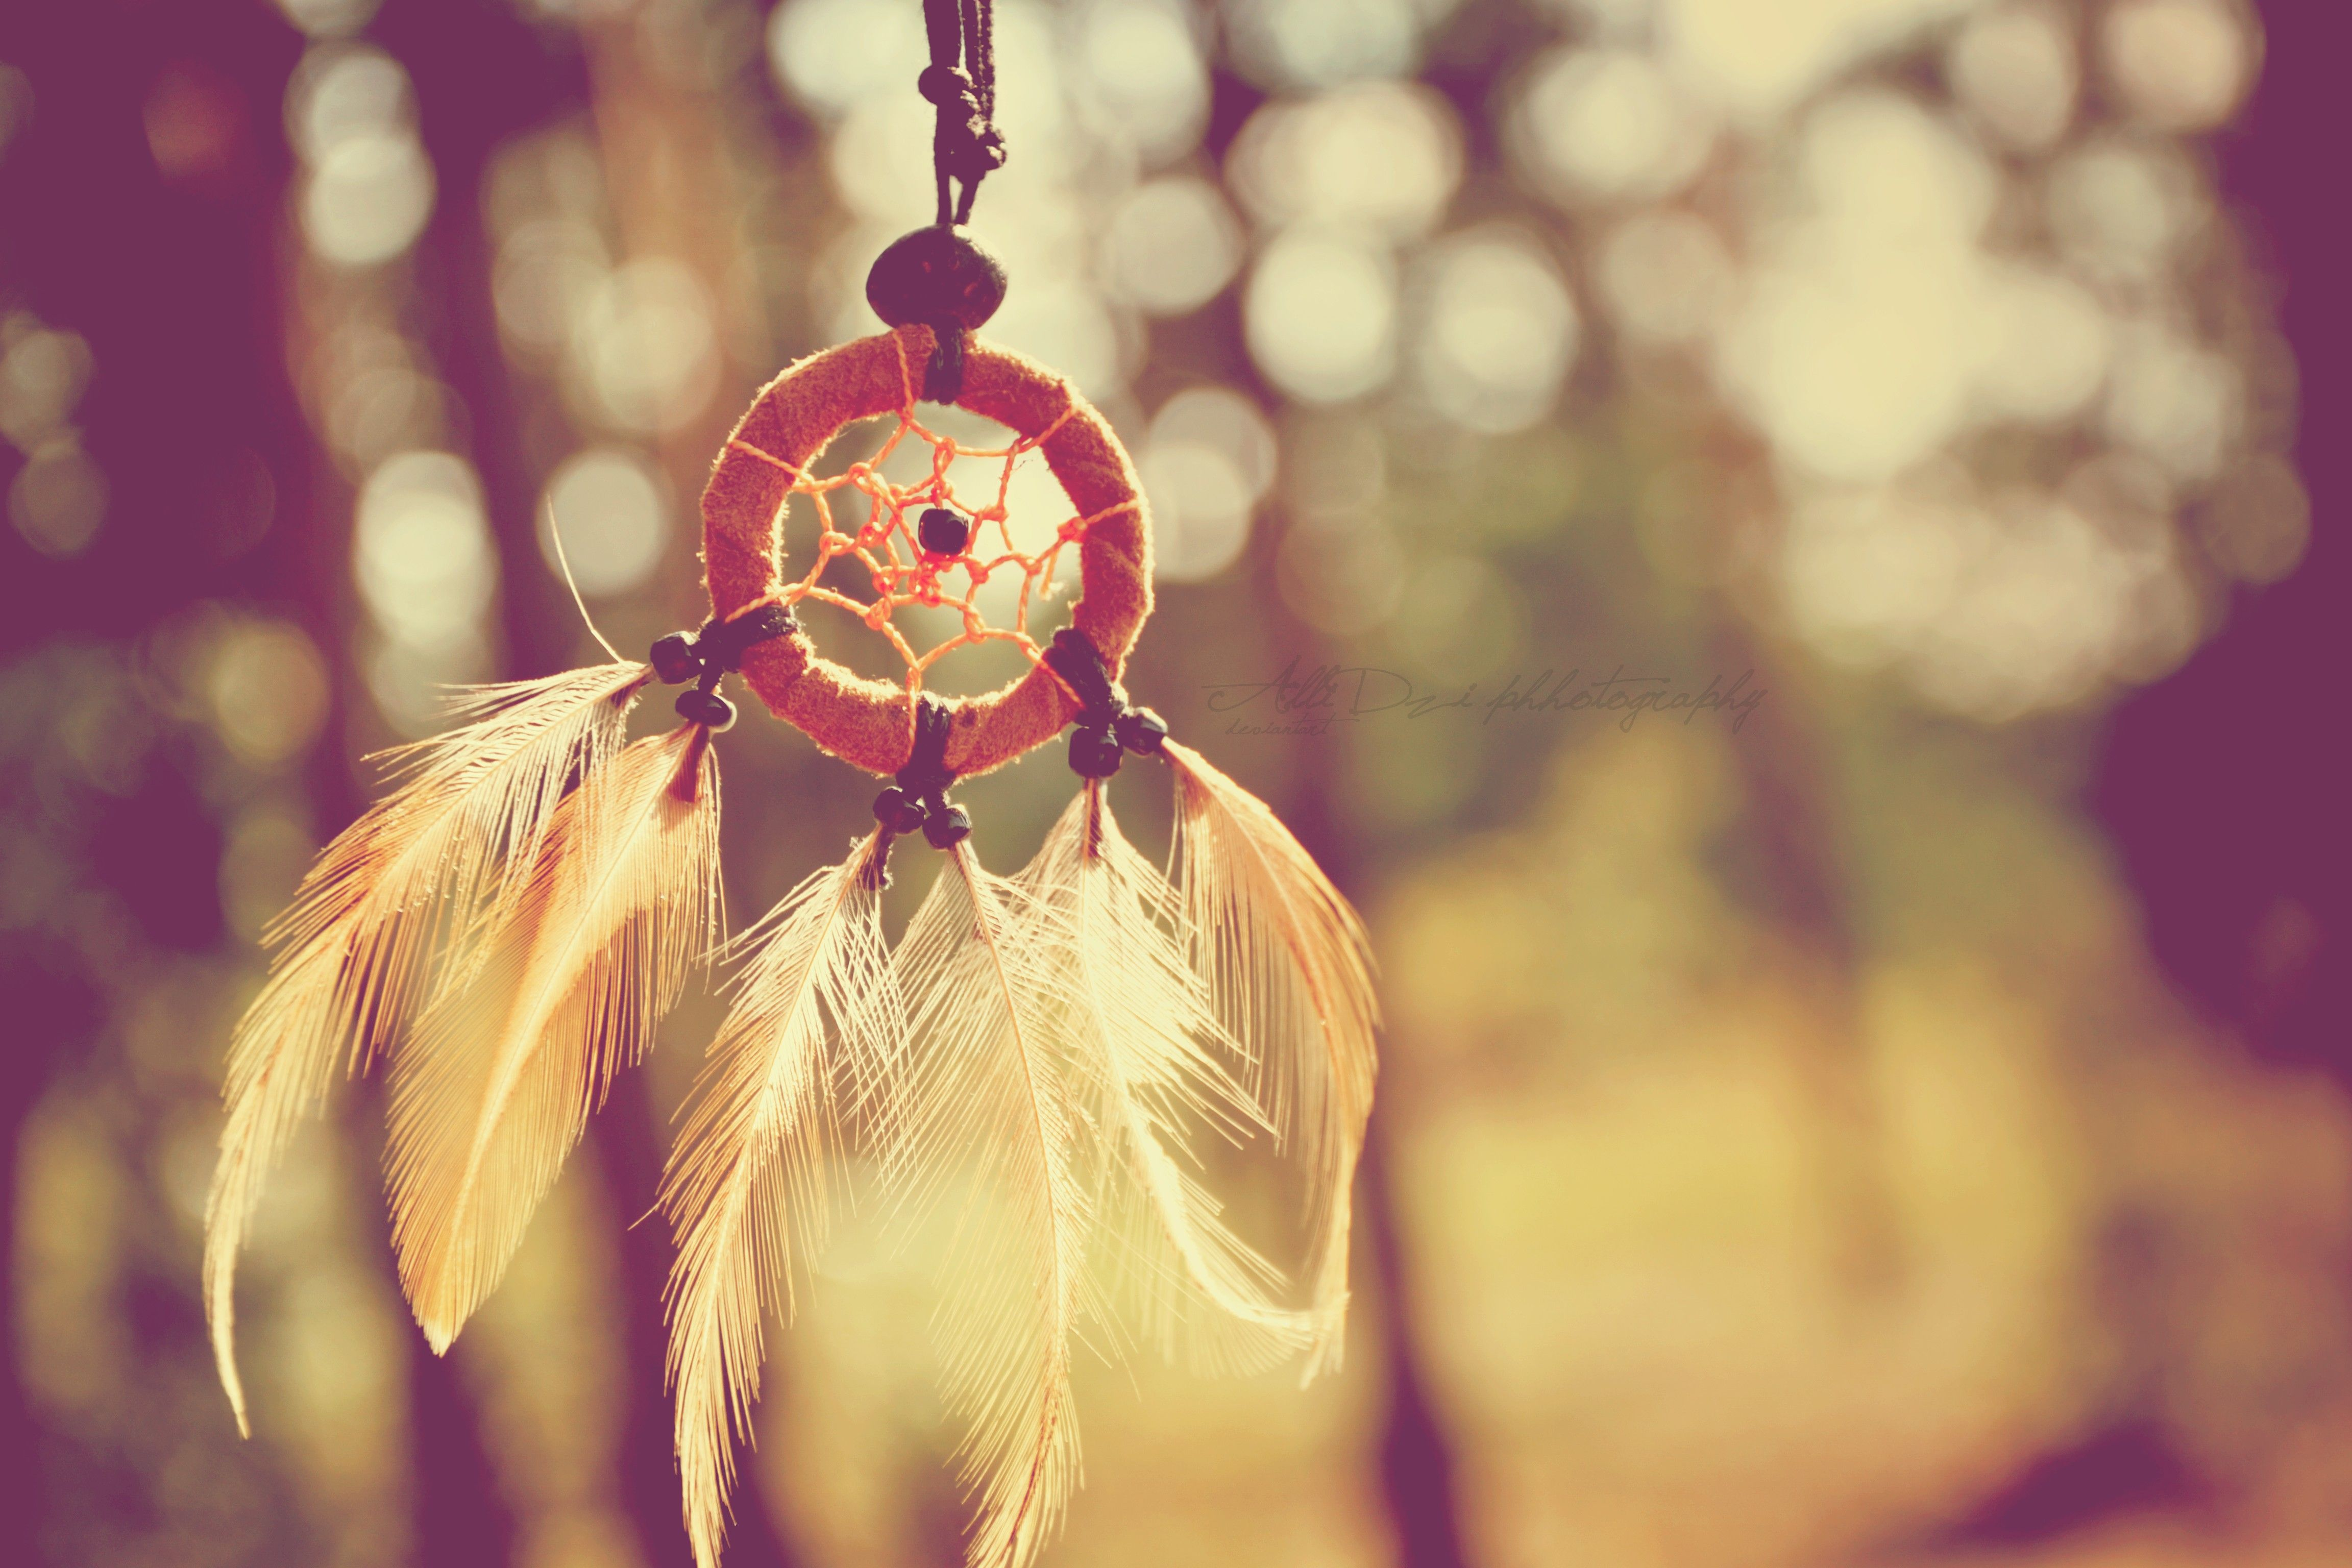 Dreamcatcher-Wallpaper-HD-Background-Desktop | - Fondos ...